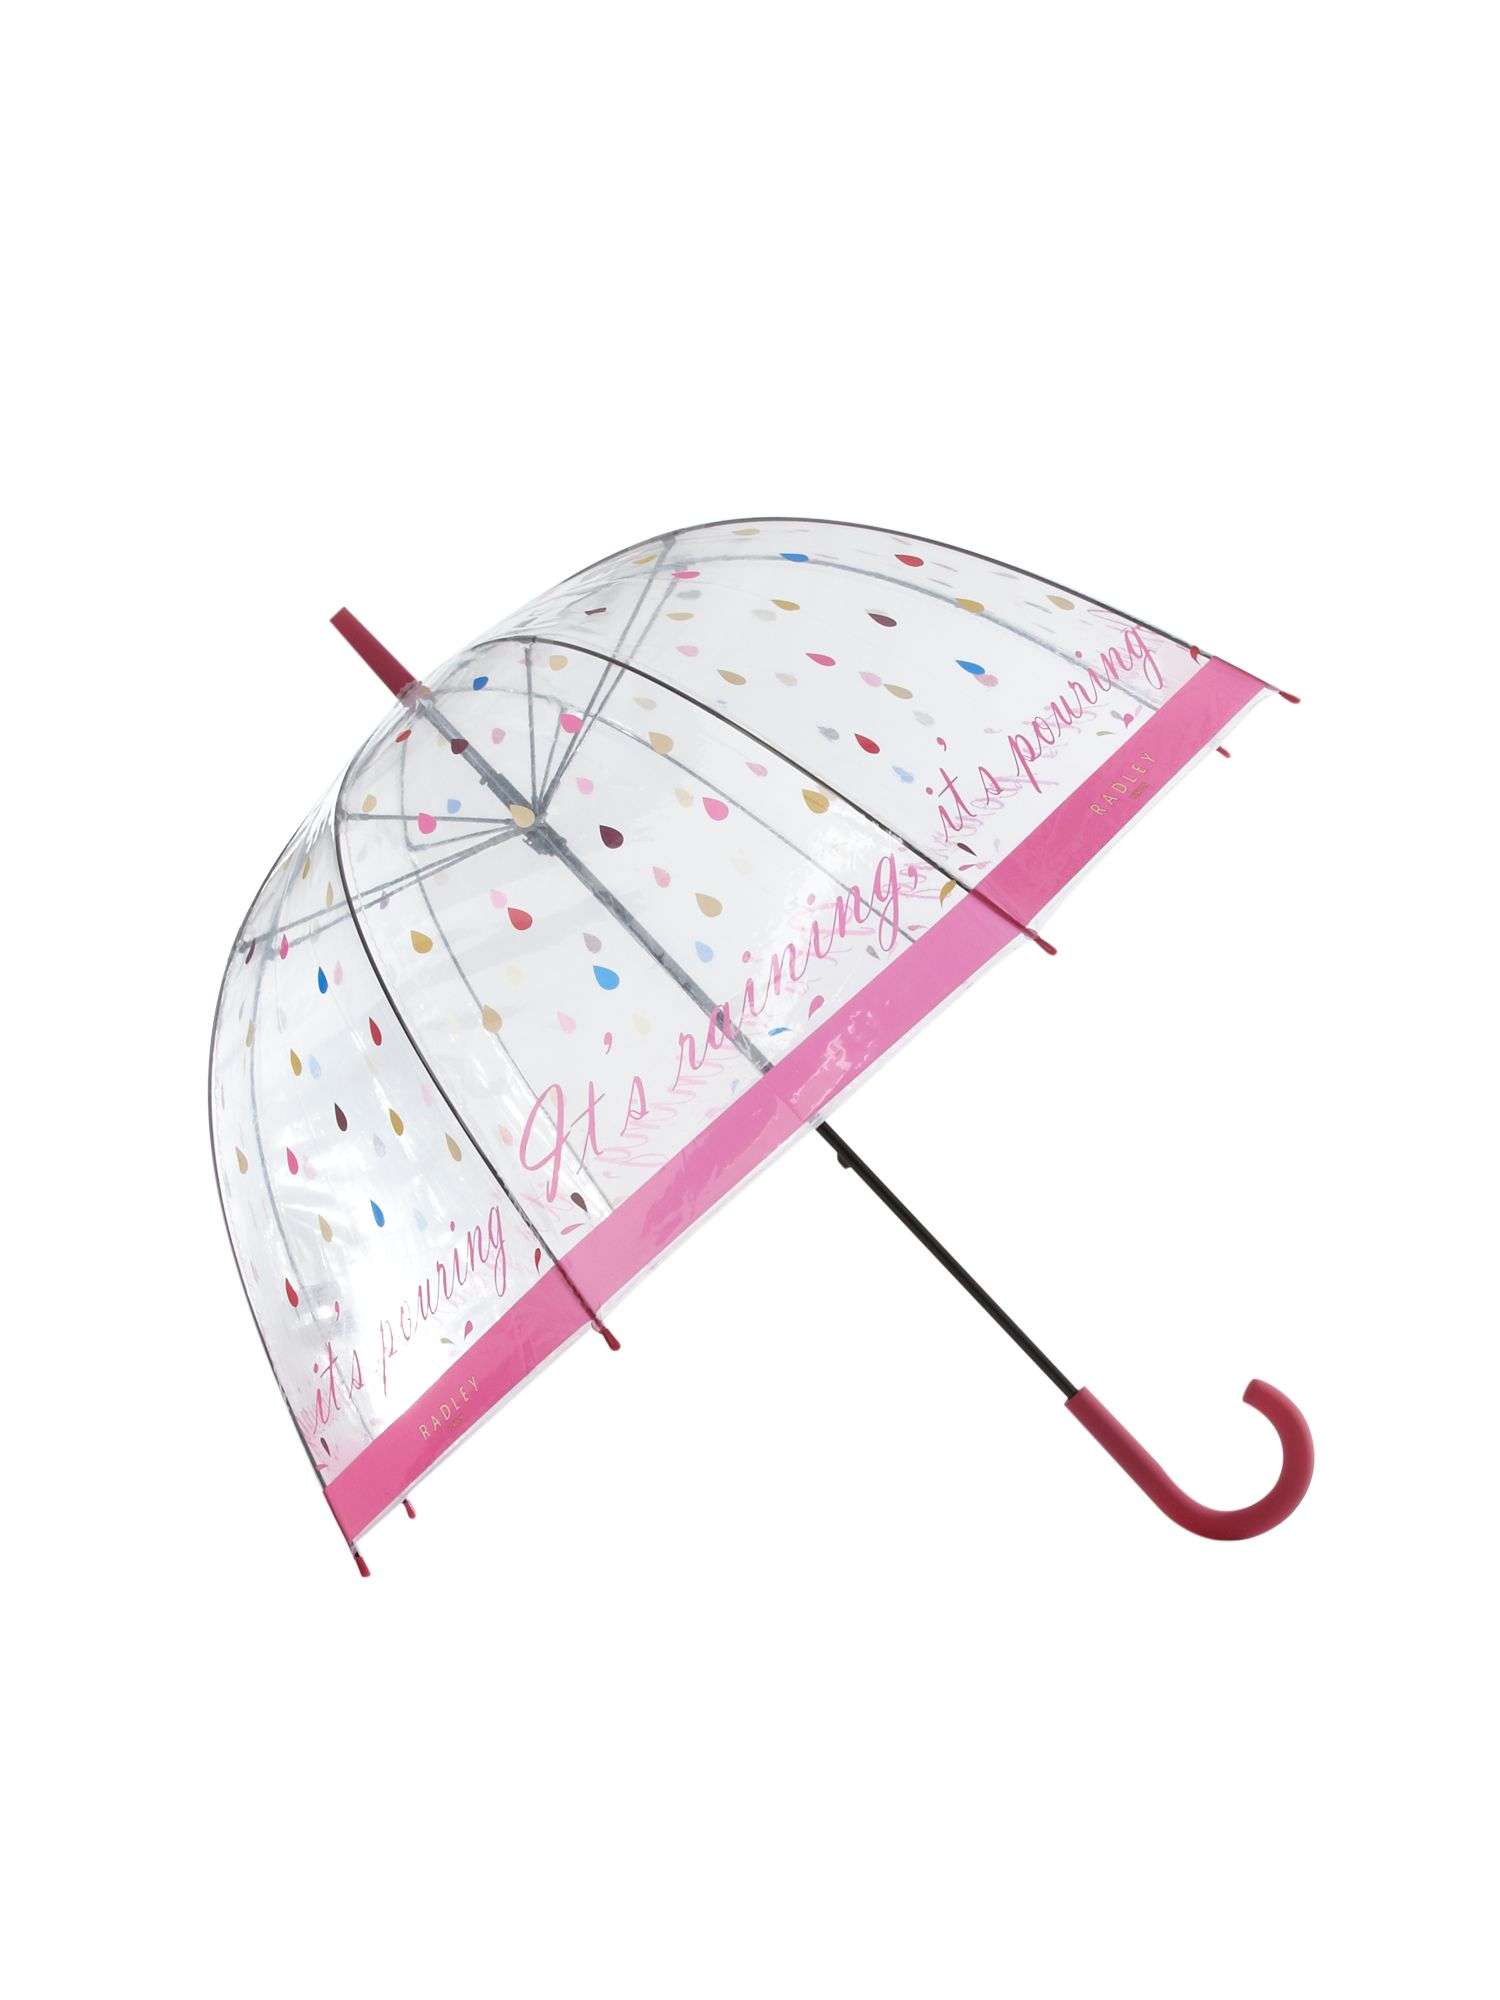 radley umbrella sale - getaspecialdeal.co.uk